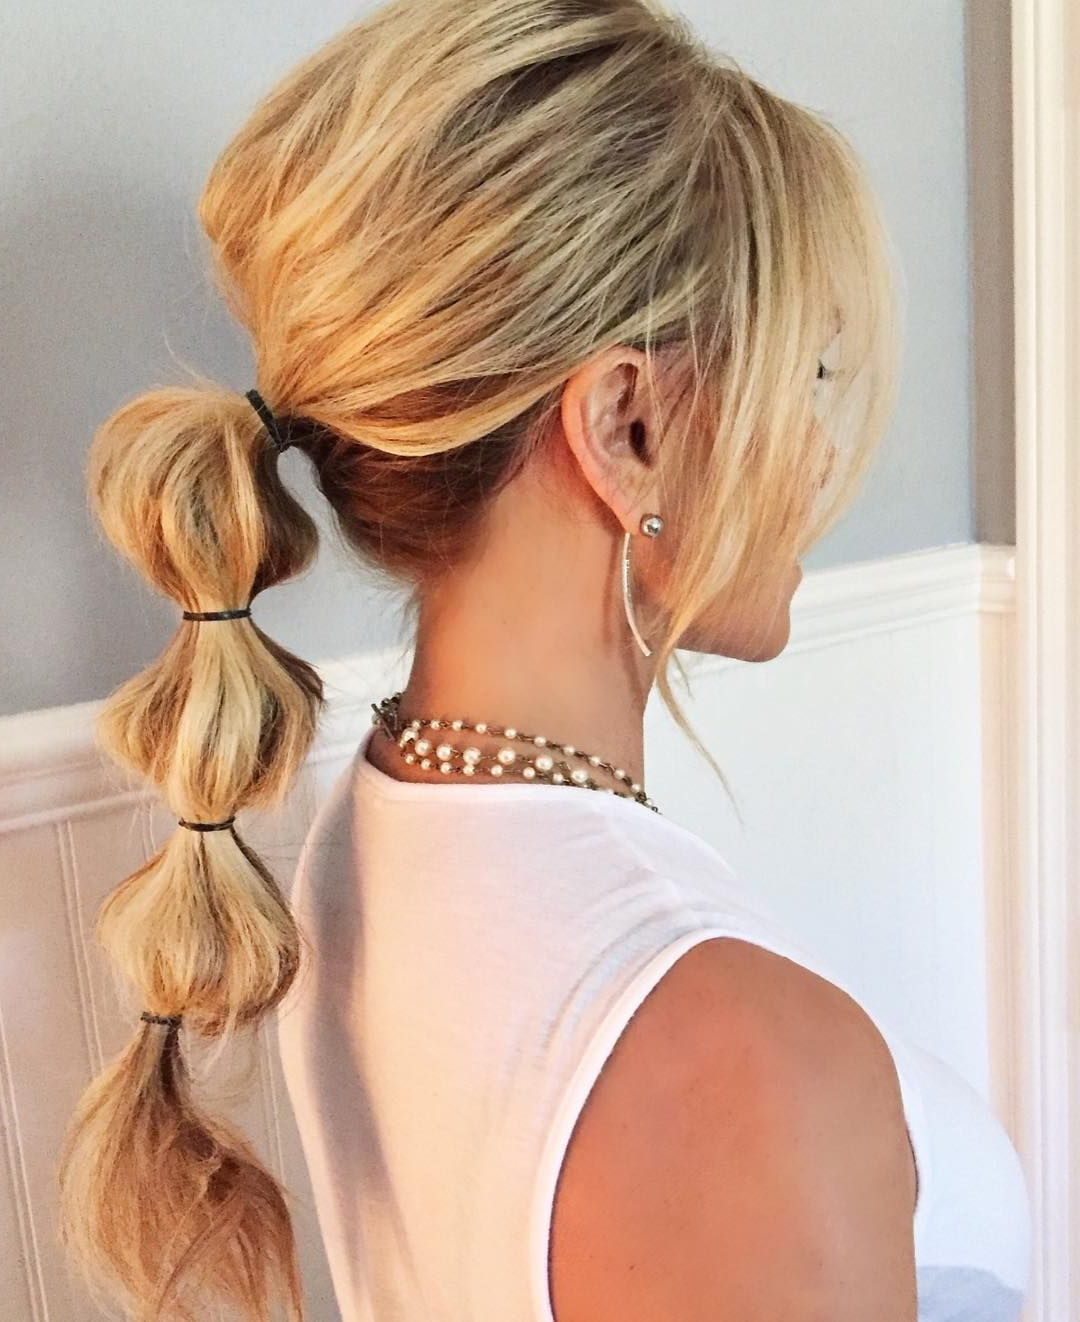 Real Housewives Of Oc's Tamra Judge's Bubble Ponytail In Well Known Bubble Pony Updo Hairstyles (View 5 of 20)